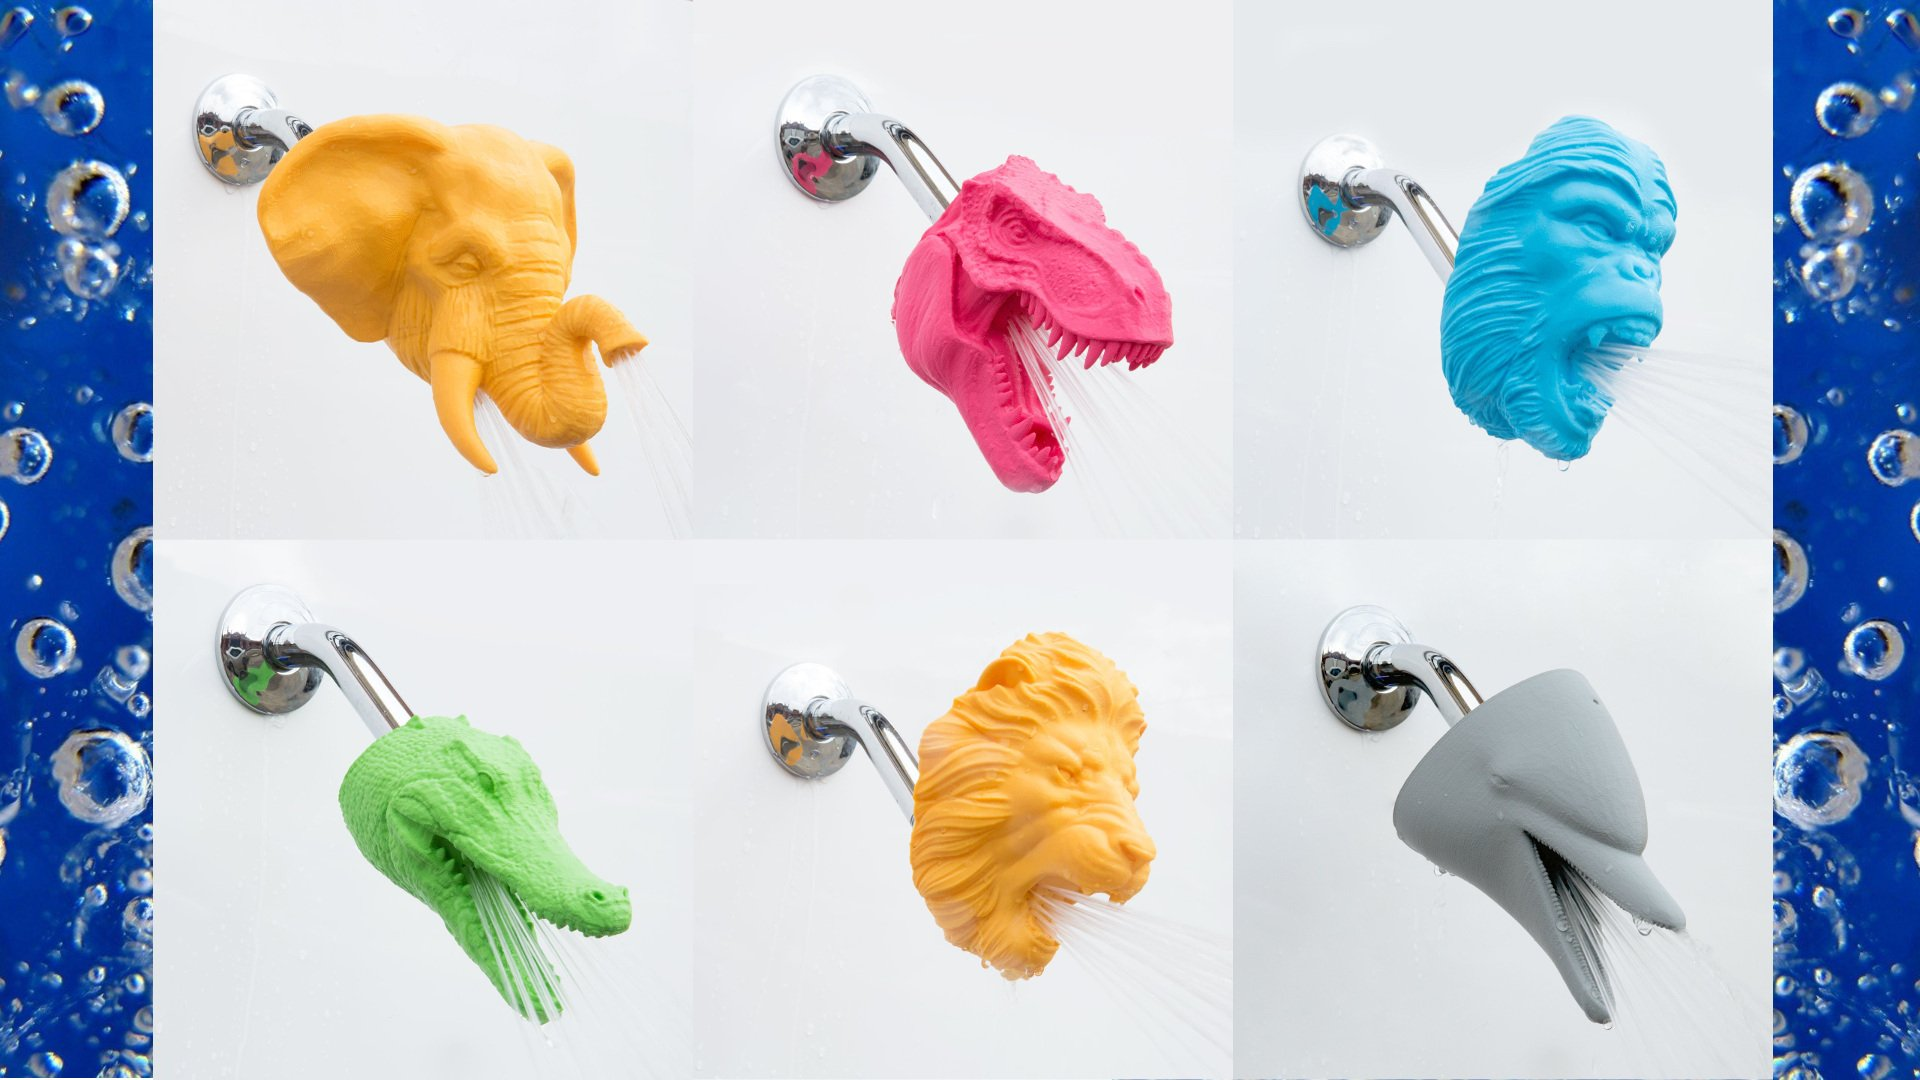 Shower with a 3D Printed Dolphin, Dinosaur or Dragon Head from Zooheads | All3DP